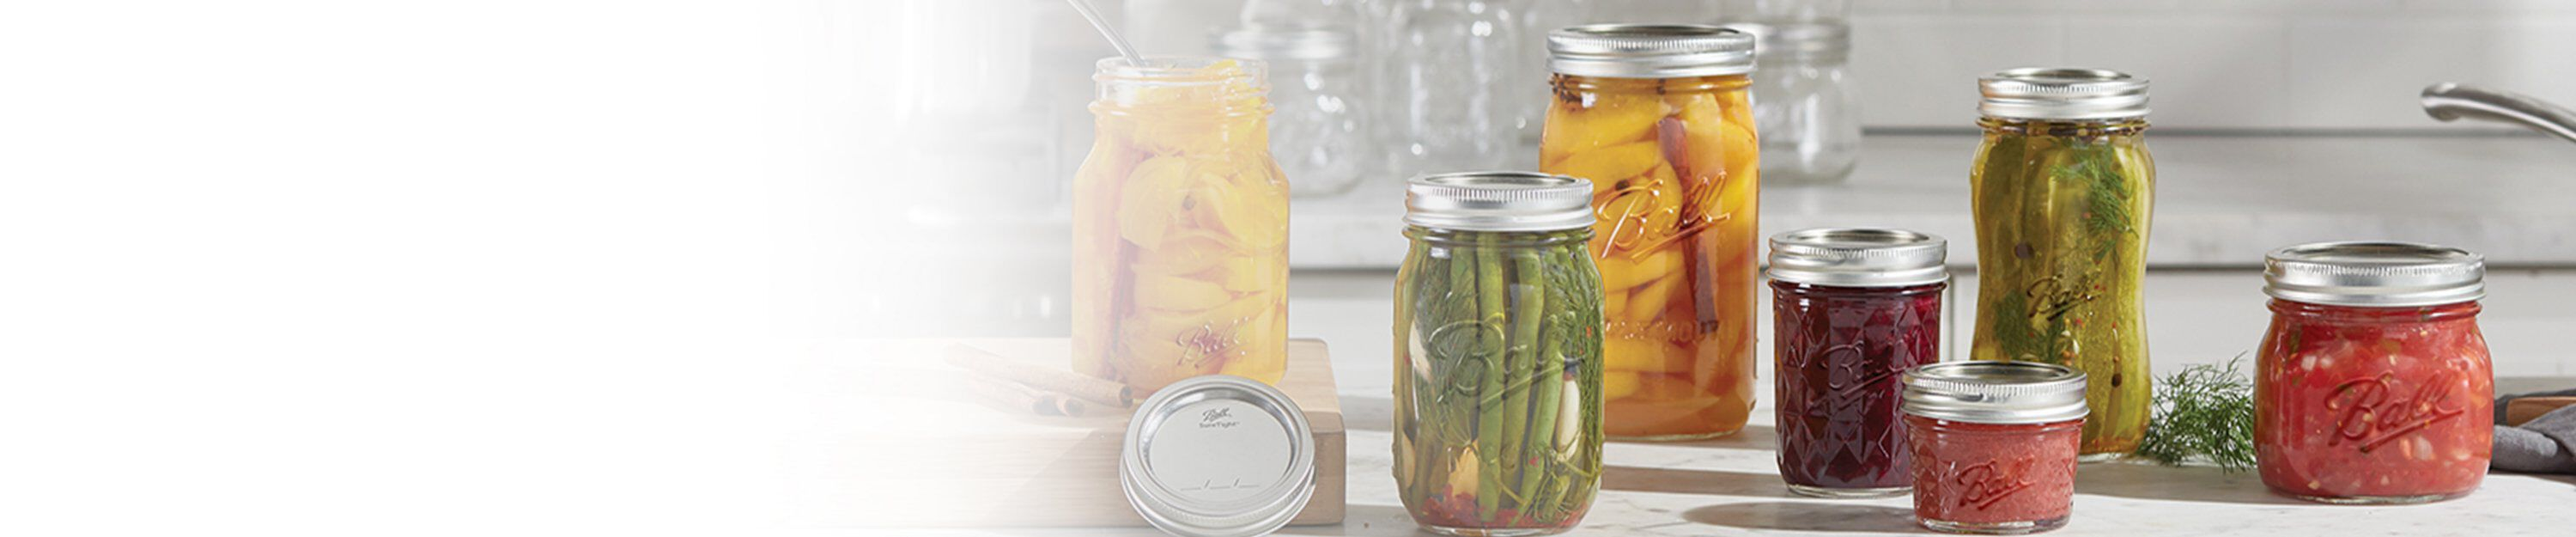 ball canning jars on counter